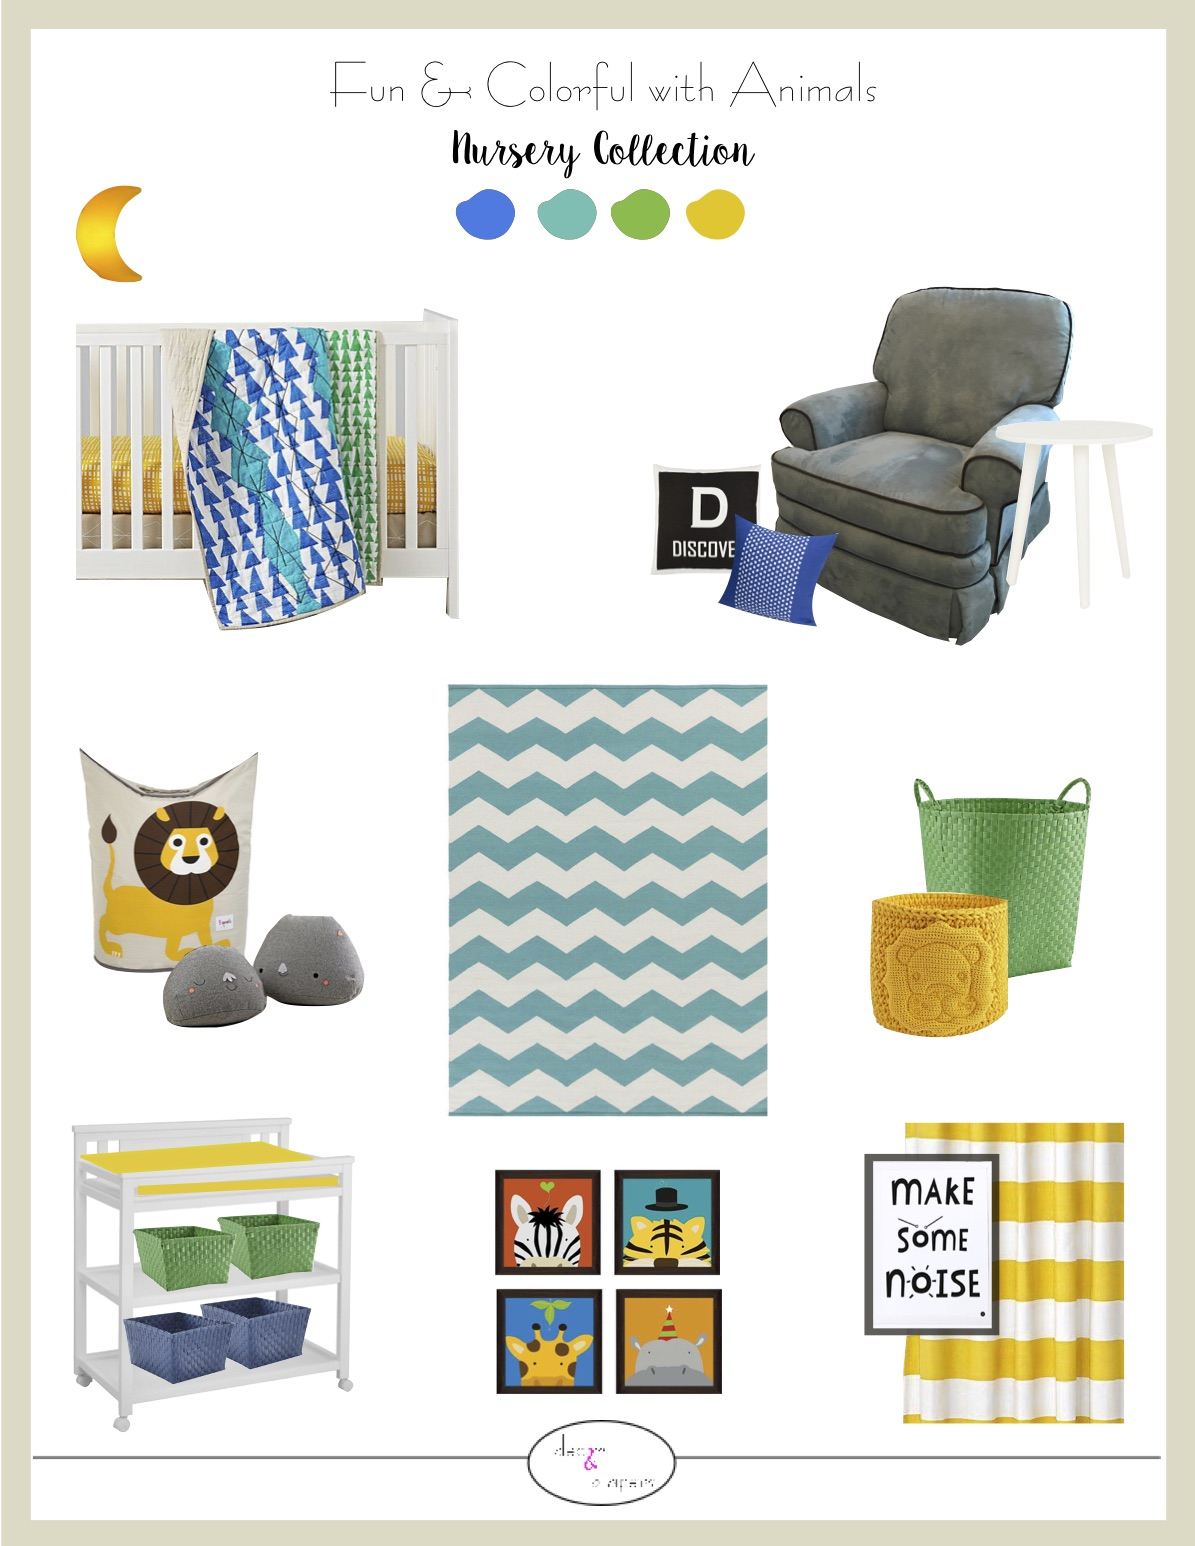 Room Collection - Here's my collection for most of the furniture and decor I selected for just for your room. It's all inspired on your favorite decor option!